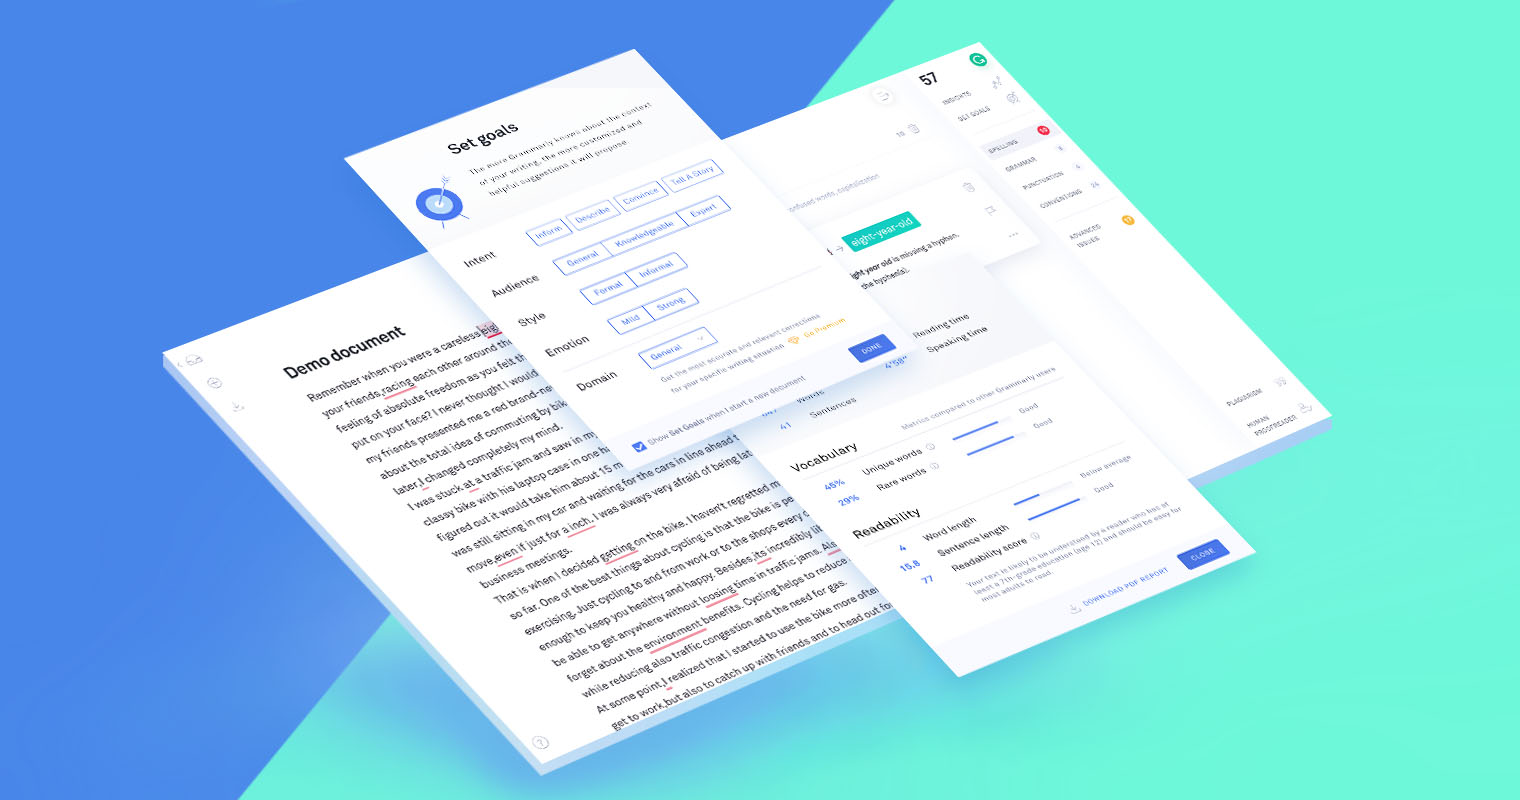 How Do Grammarly's Products Work?  Grammarly